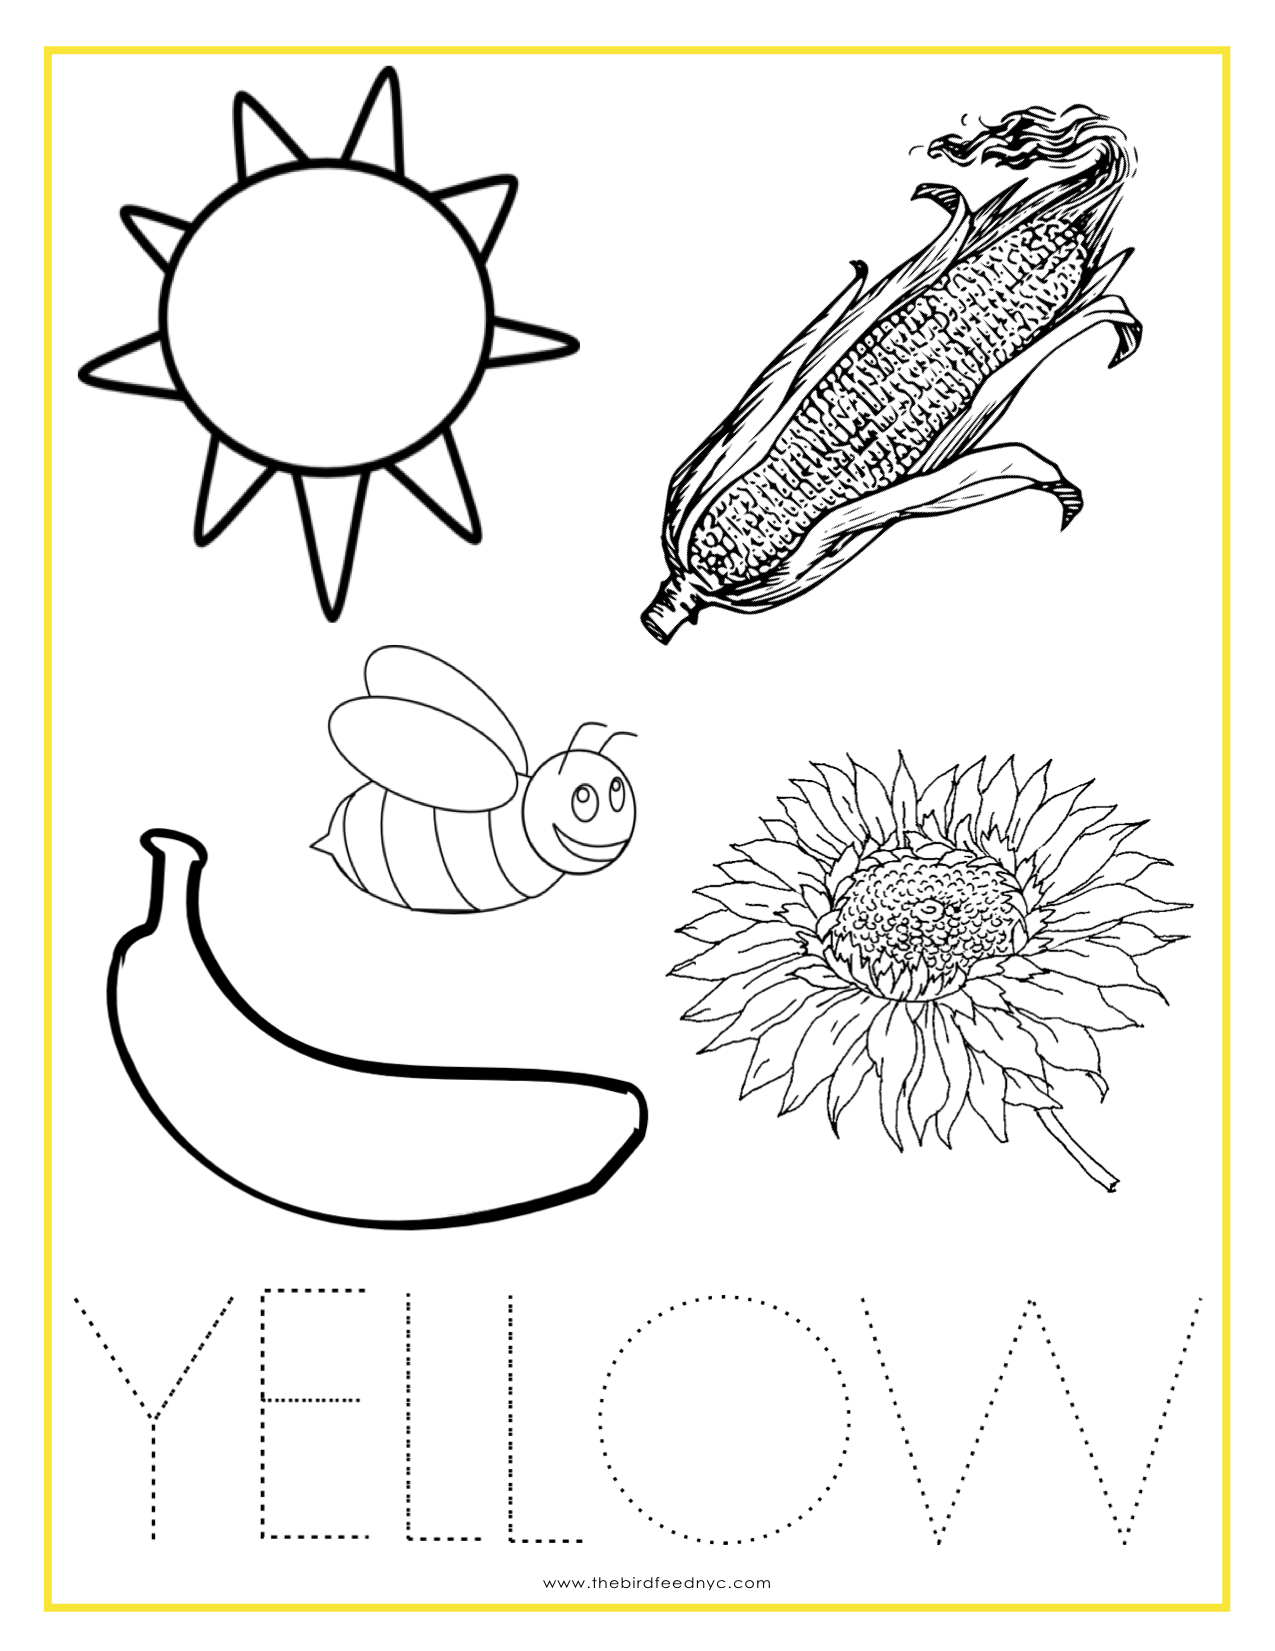 Colors for learning free printable learning colors coloring pages are - Best Photos Of Yellow Coloring Page Printable Color Yellow Az Coloring Pages